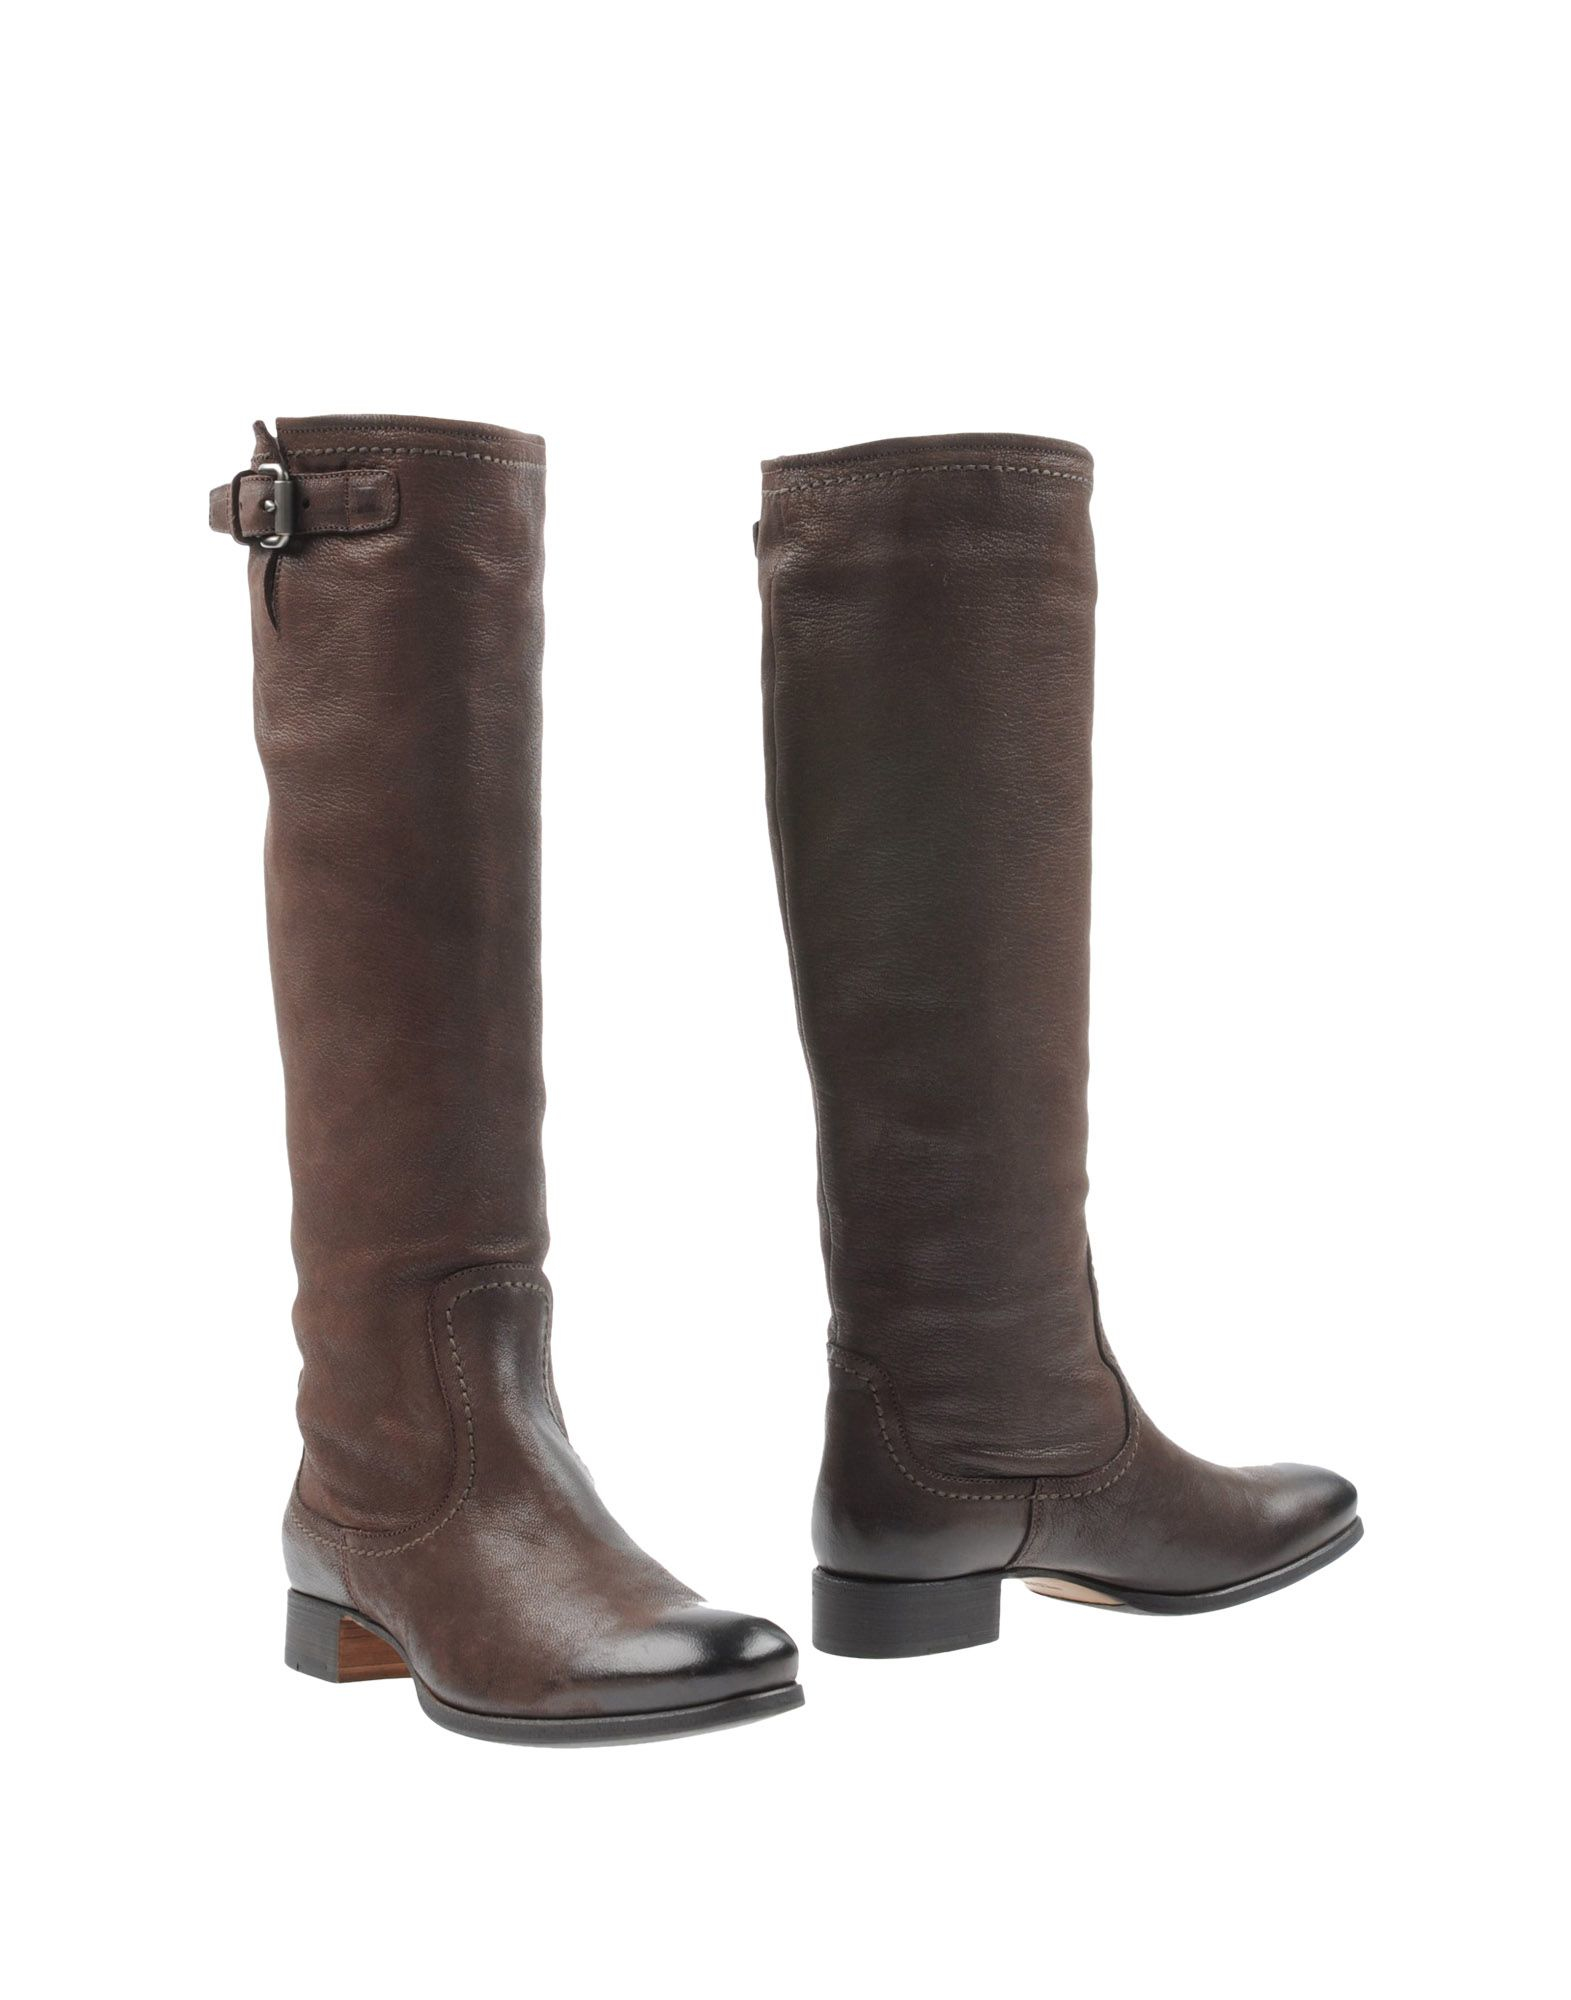 Lyst - Prada Boots in Brown